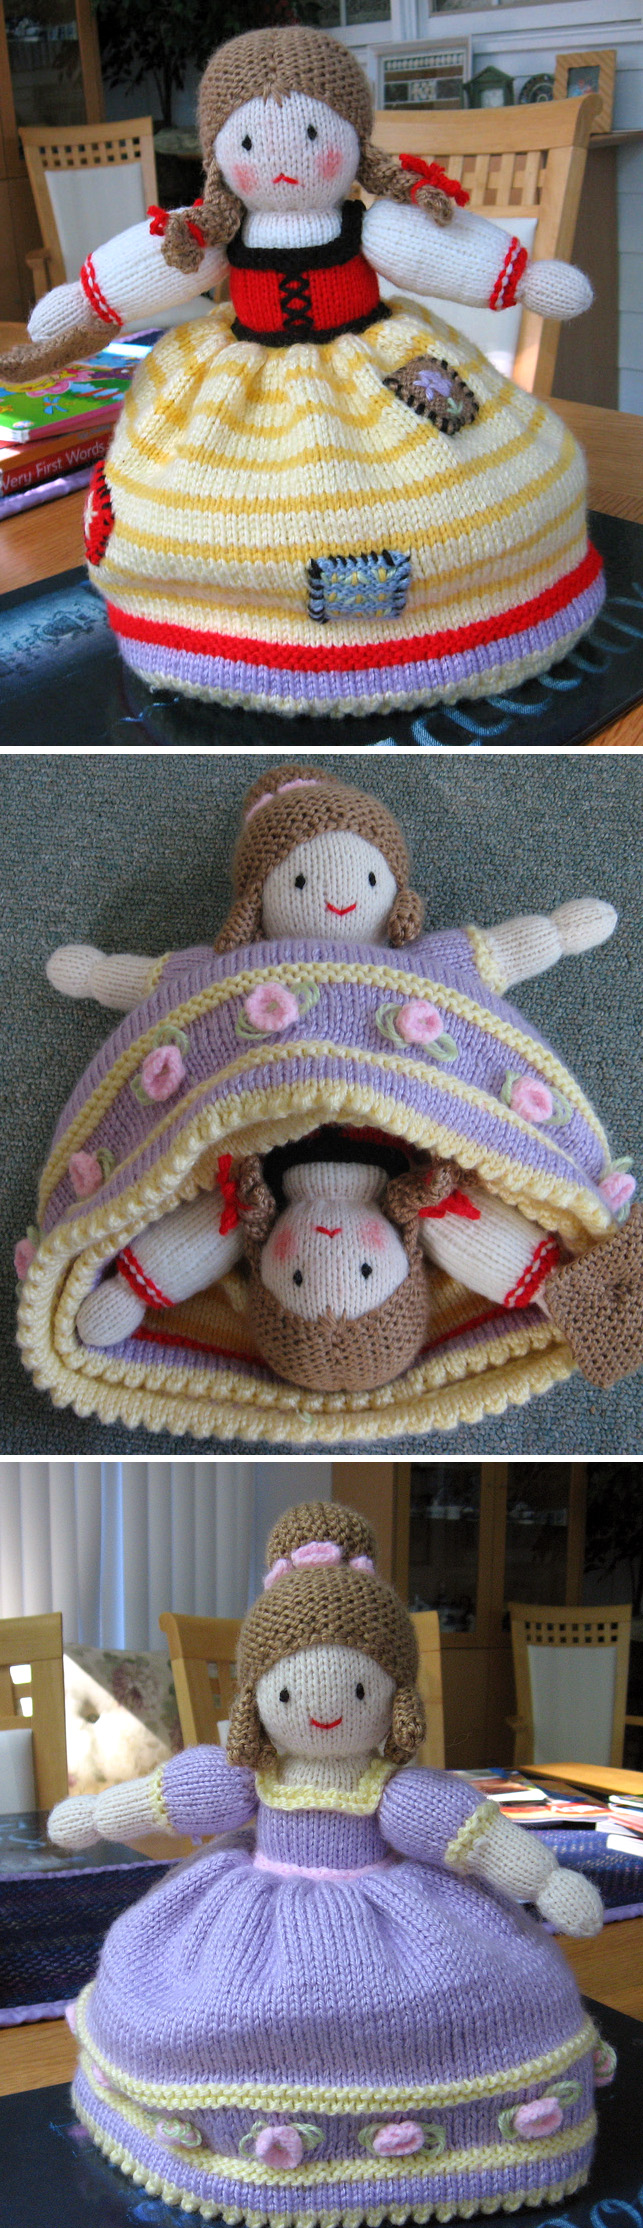 Knitting Pattern for Cinderella Topsy Turvy Doll